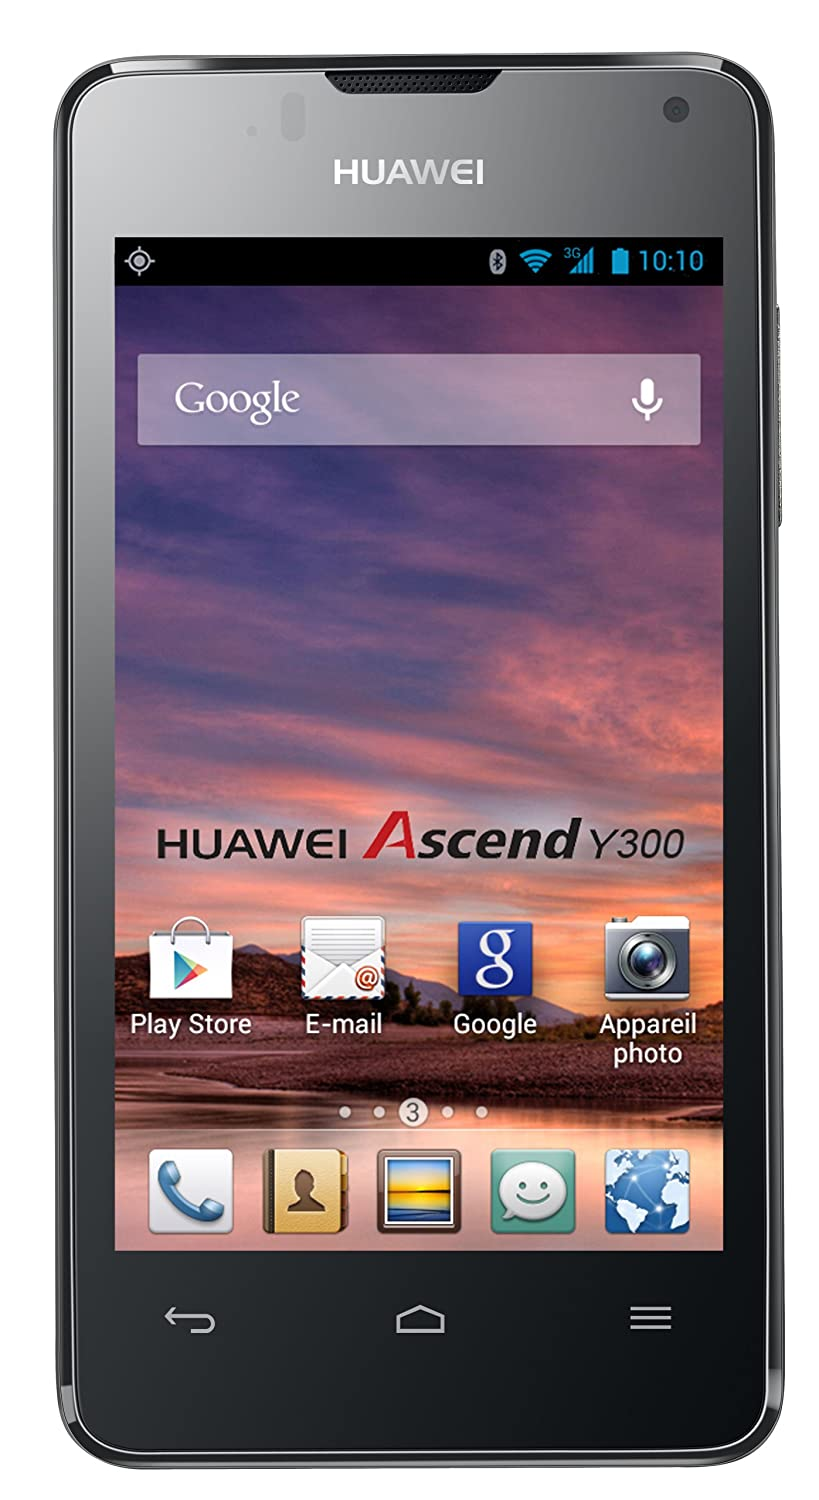 HUAWEI ASCEND Y300 WINDOWS 7 64BIT DRIVER DOWNLOAD